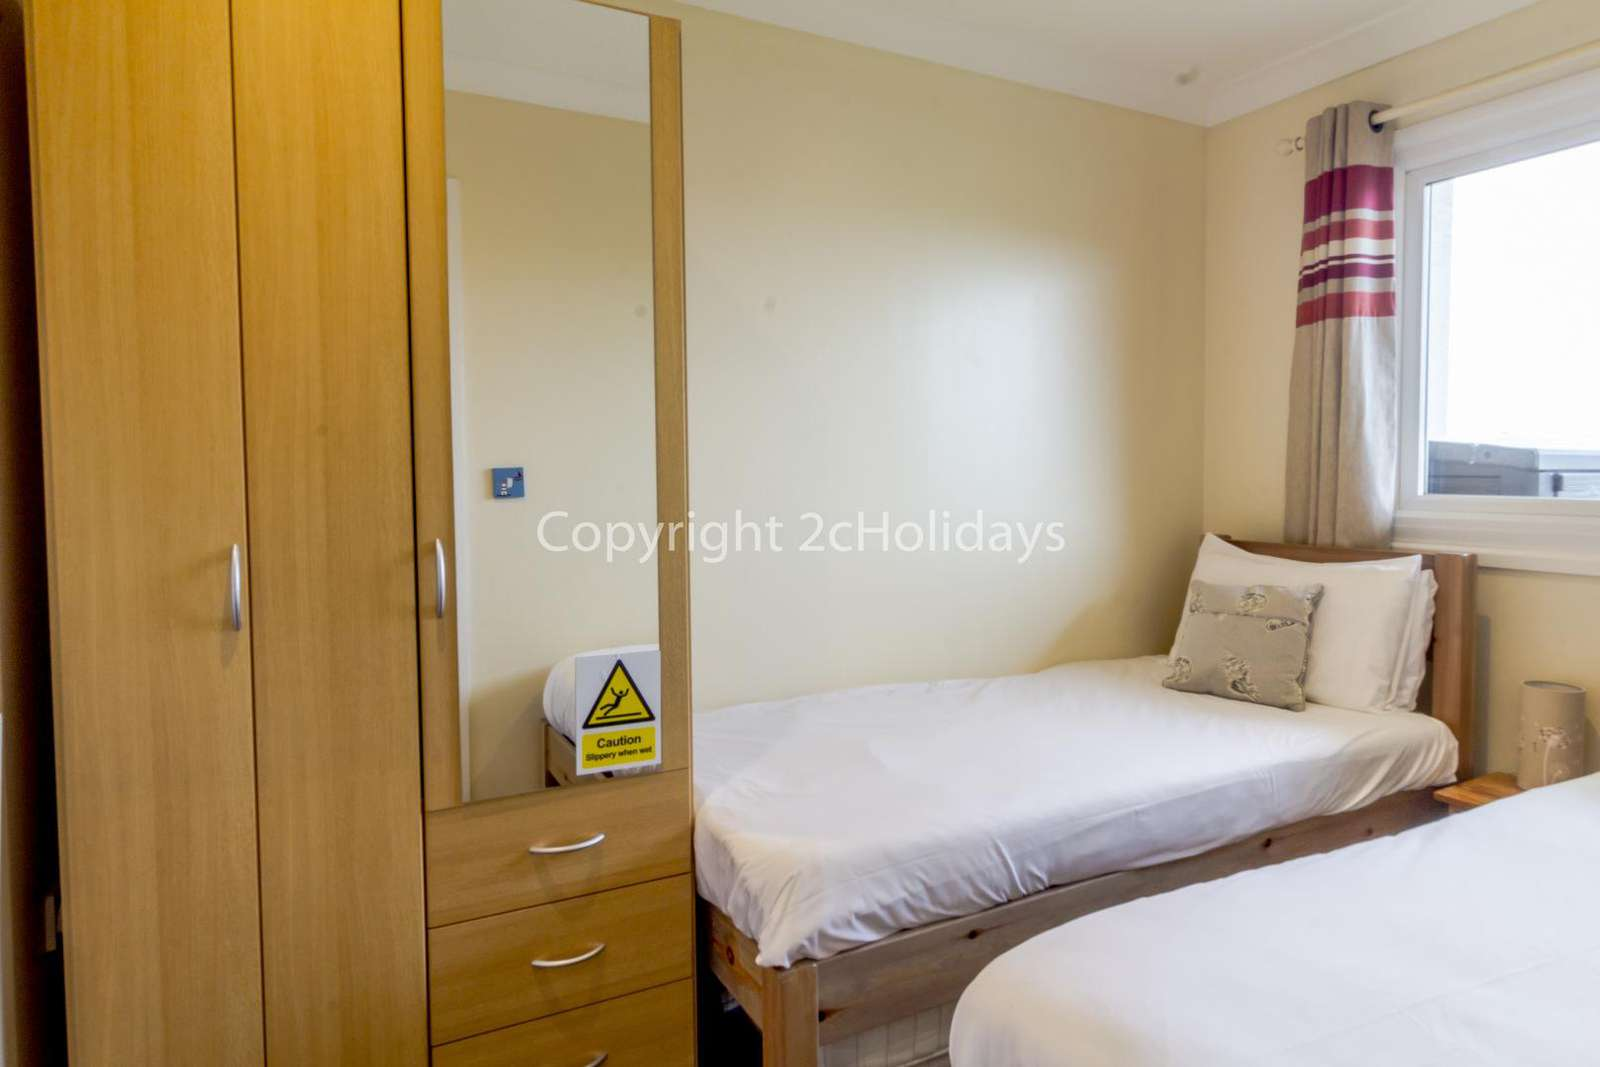 Cosy twin bedroom with plenty of storage space